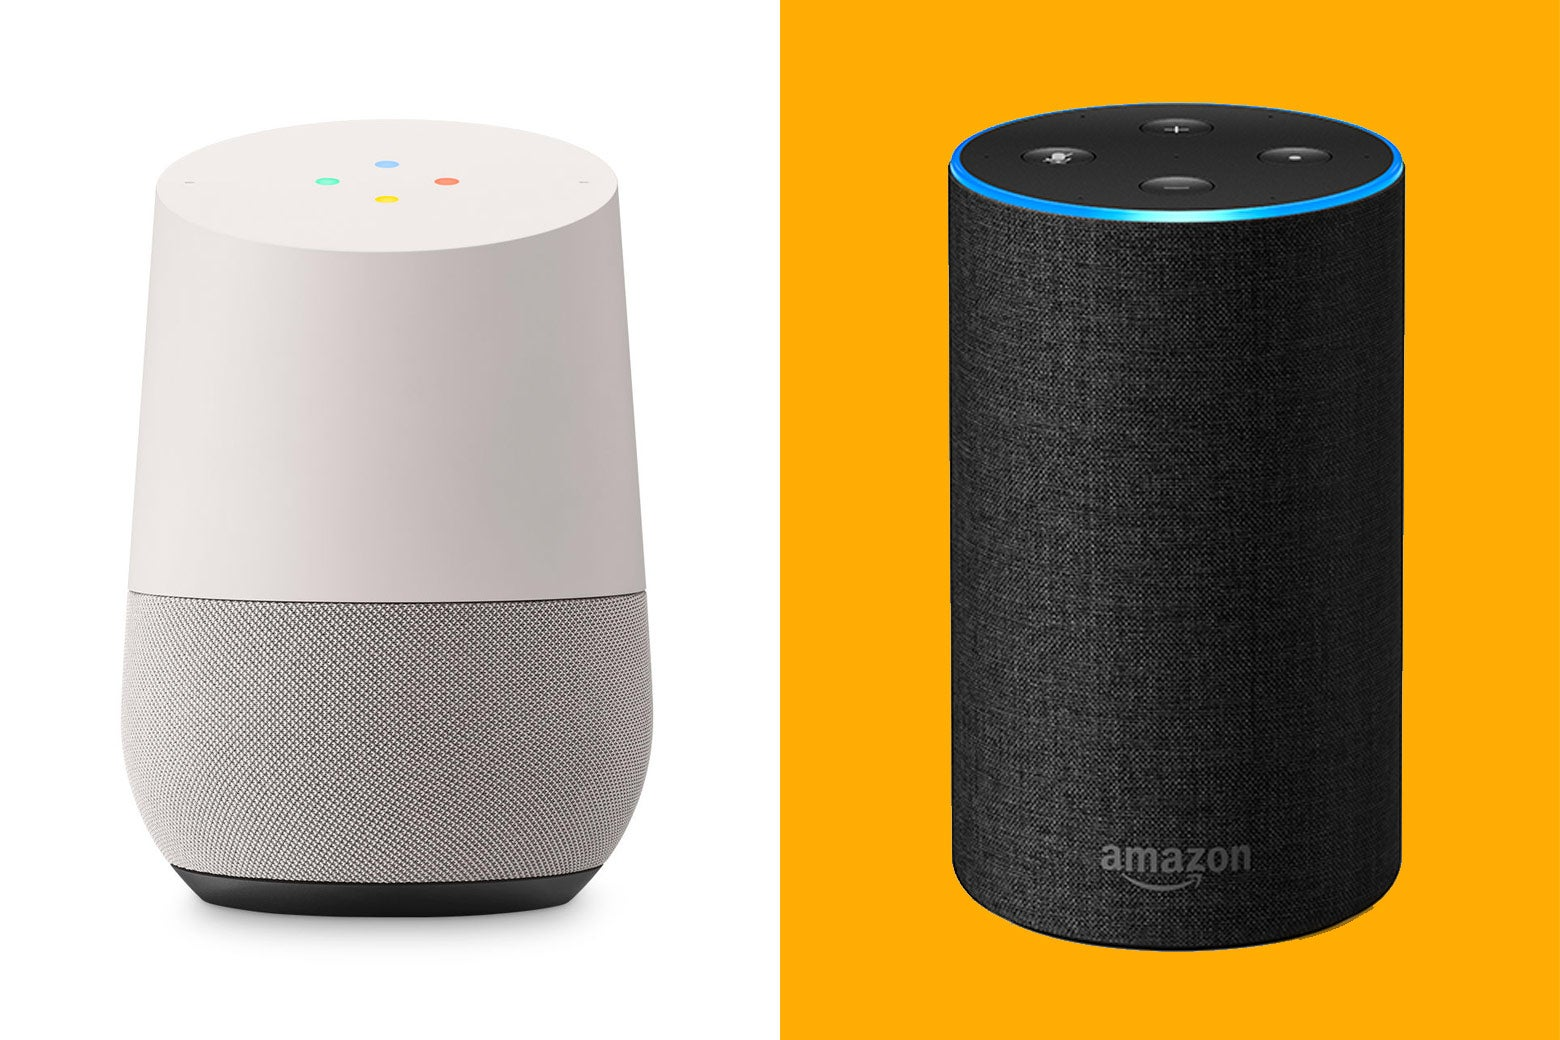 A Google Home and an Amazon Echo.